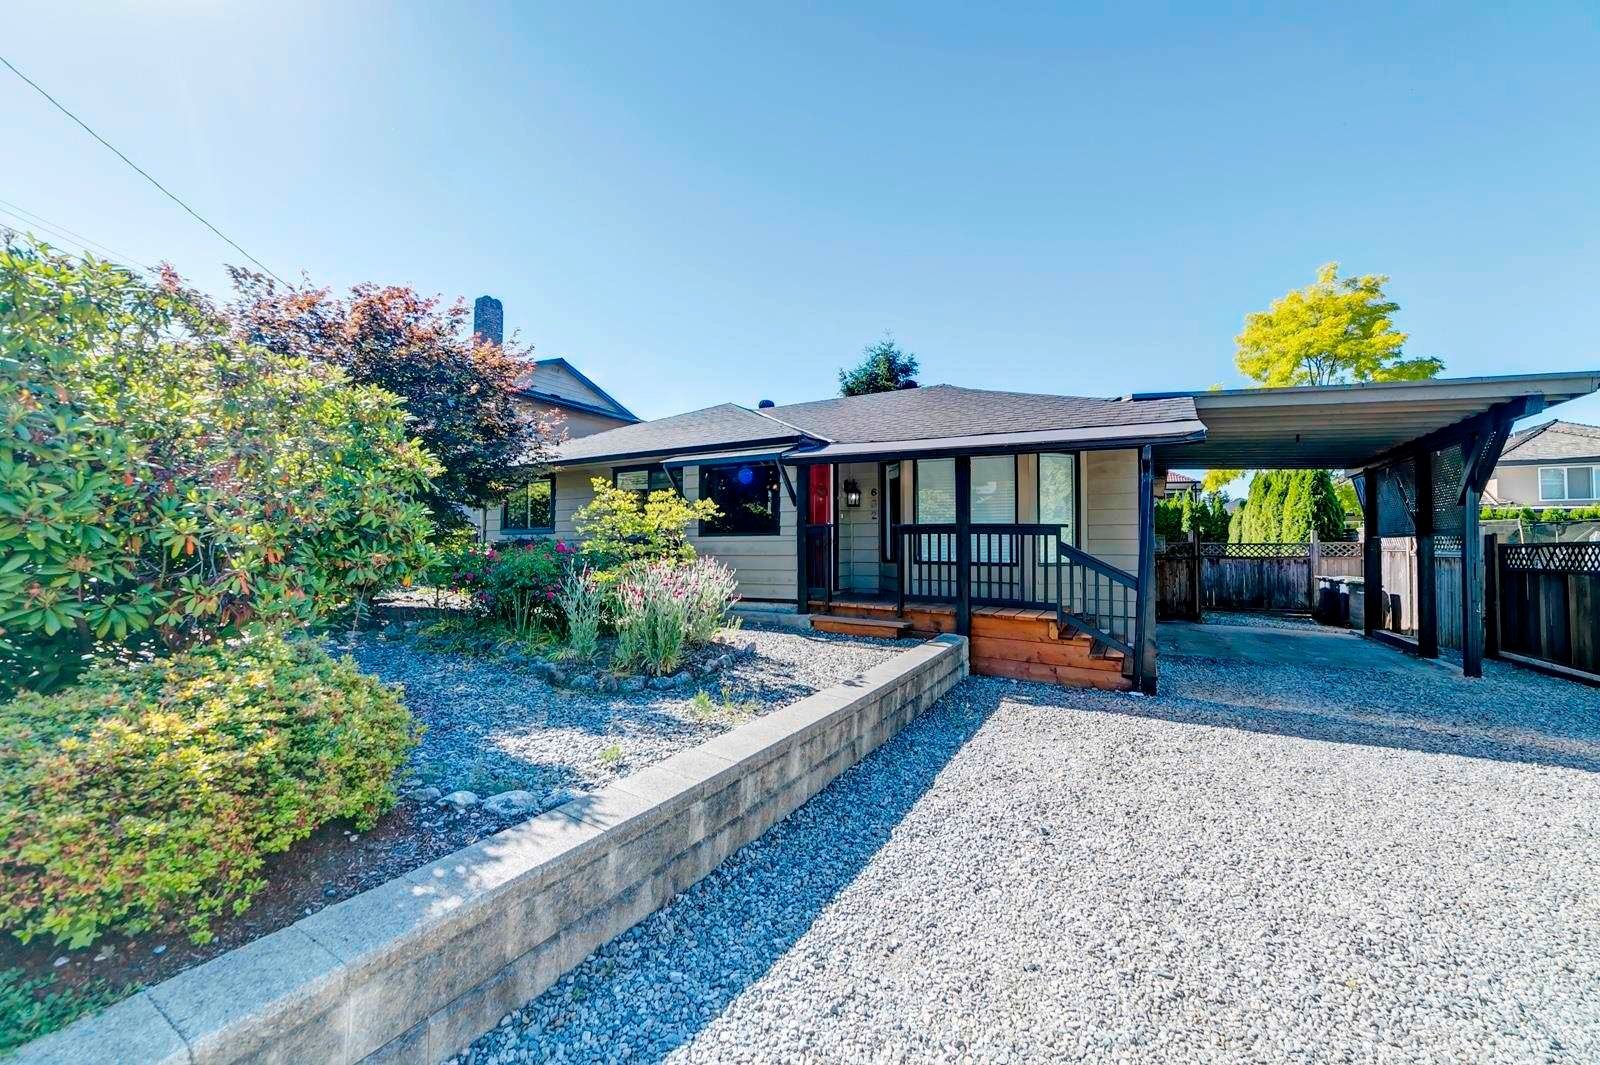 Main Photo: 632 CHAPMAN Avenue in Coquitlam: Coquitlam West House for sale : MLS®# R2595703